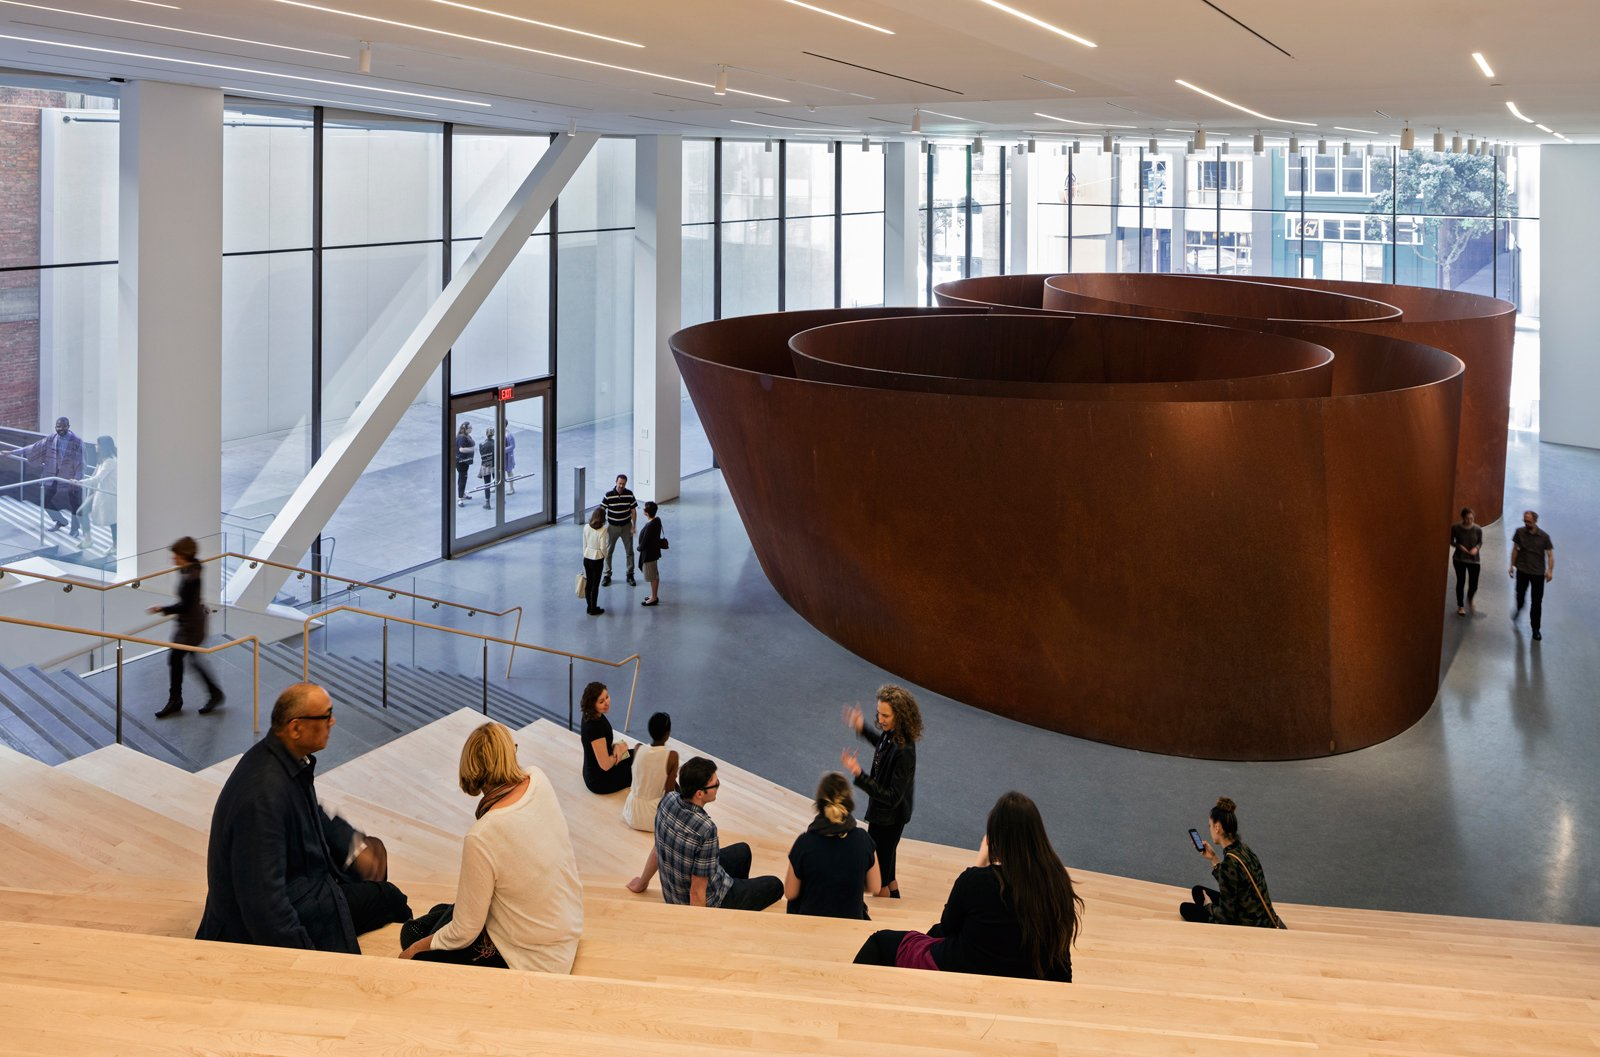 Visitors sit on steps before a massive spiraling bronze sculpture